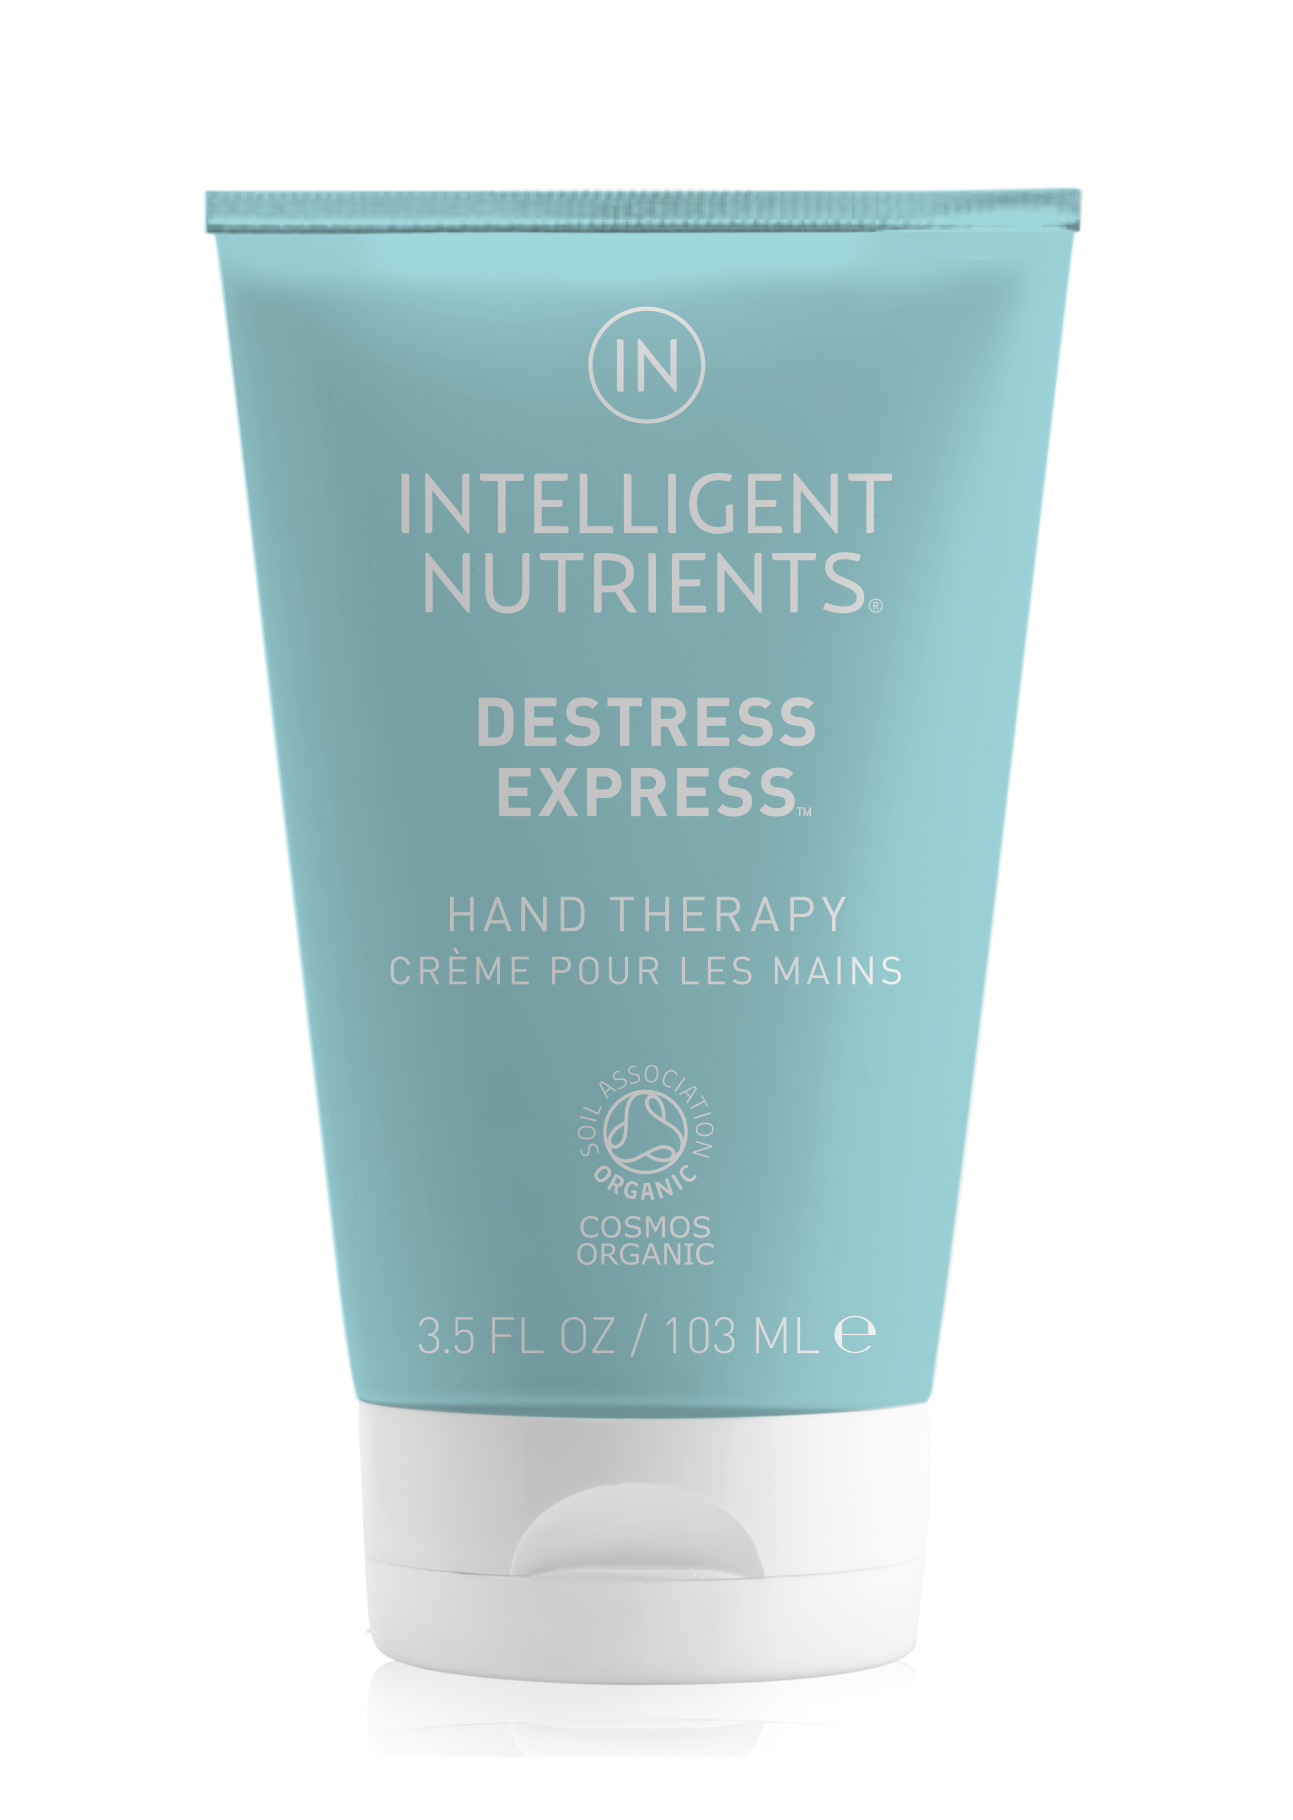 Destress Express™ Hand Therapy (DKK220/103ml)